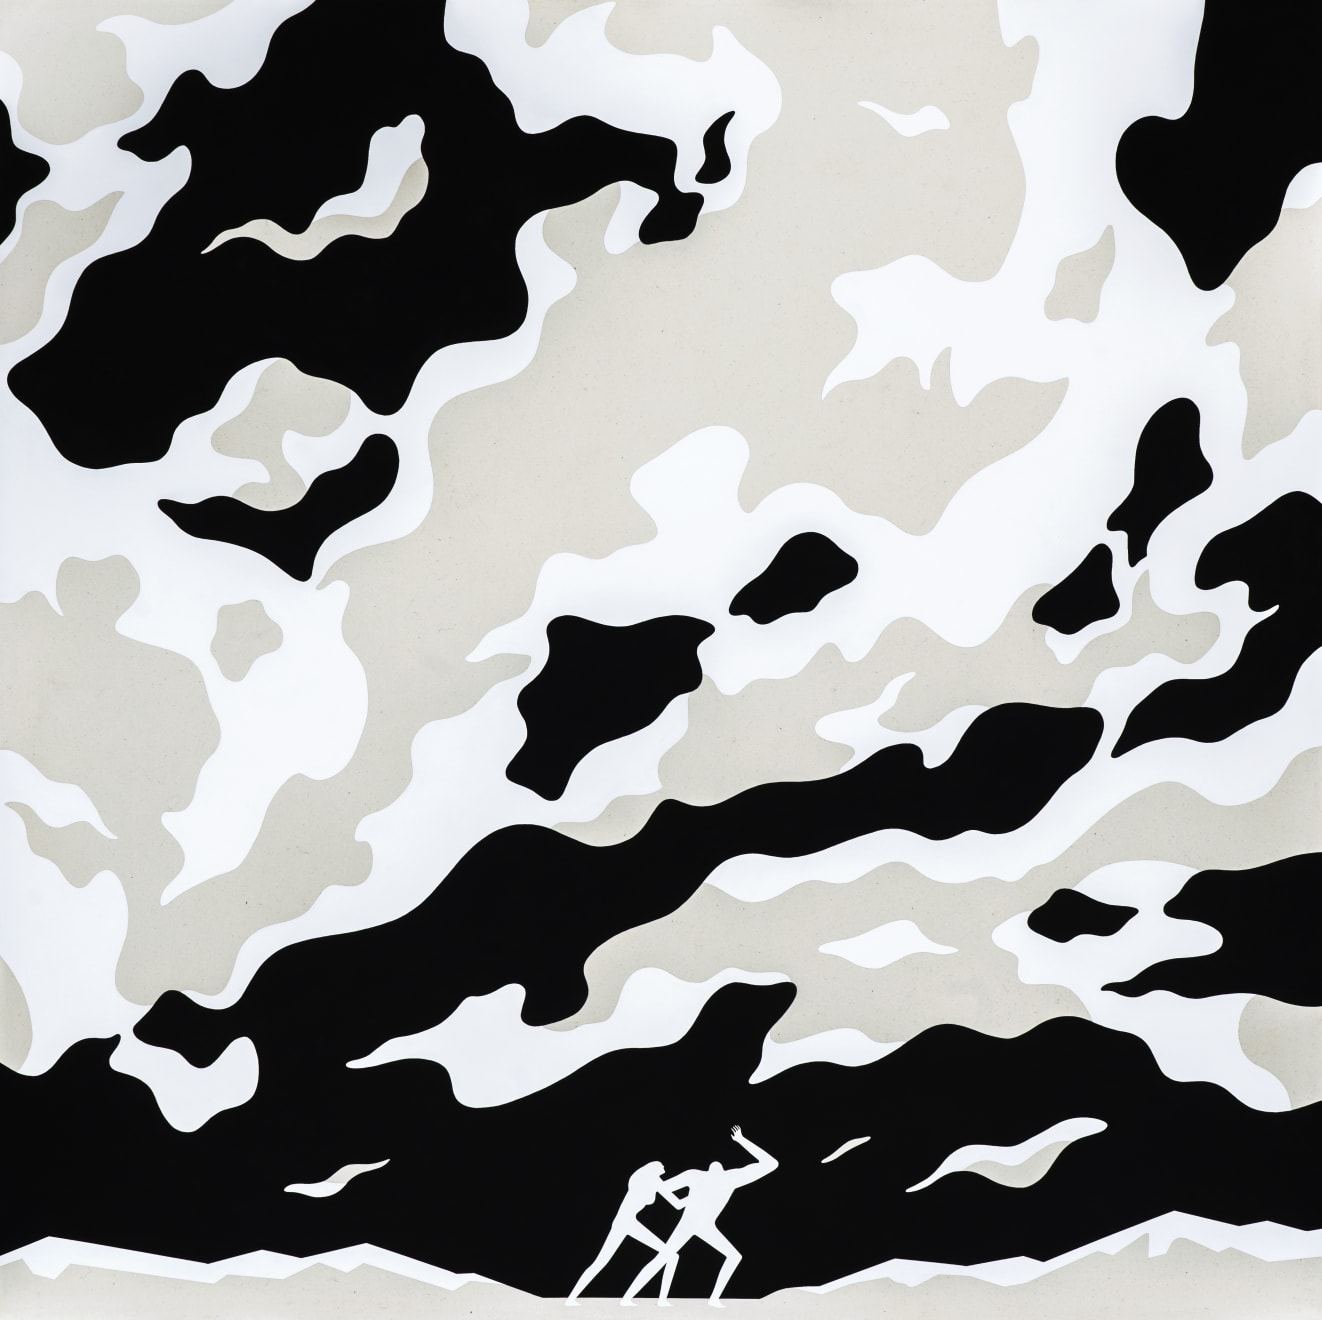 Cleon Peterson, Exile, 2019